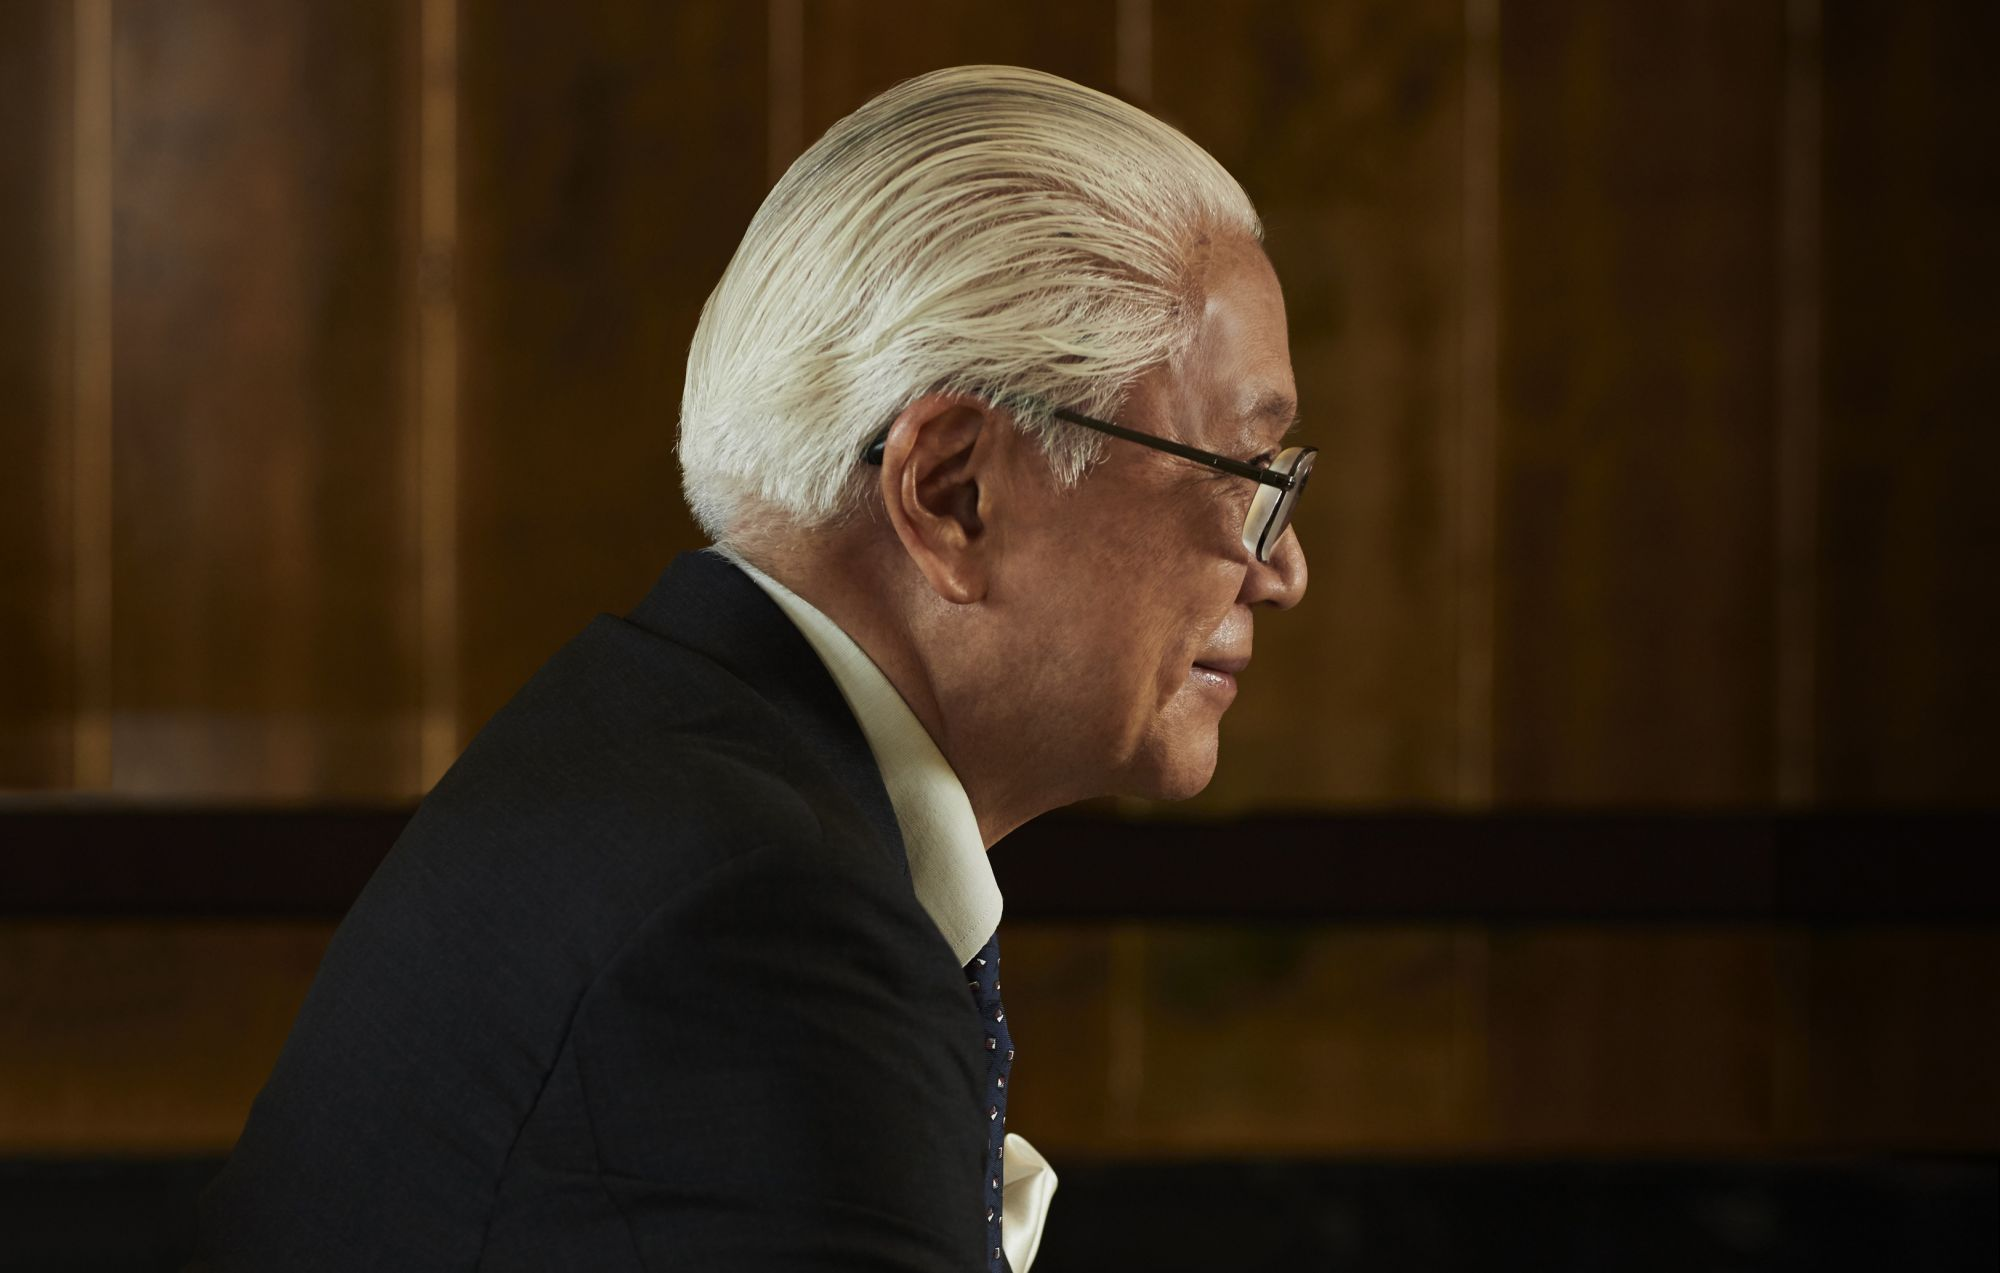 Dr. Tony Tan Keng Yam On Life After Presidency